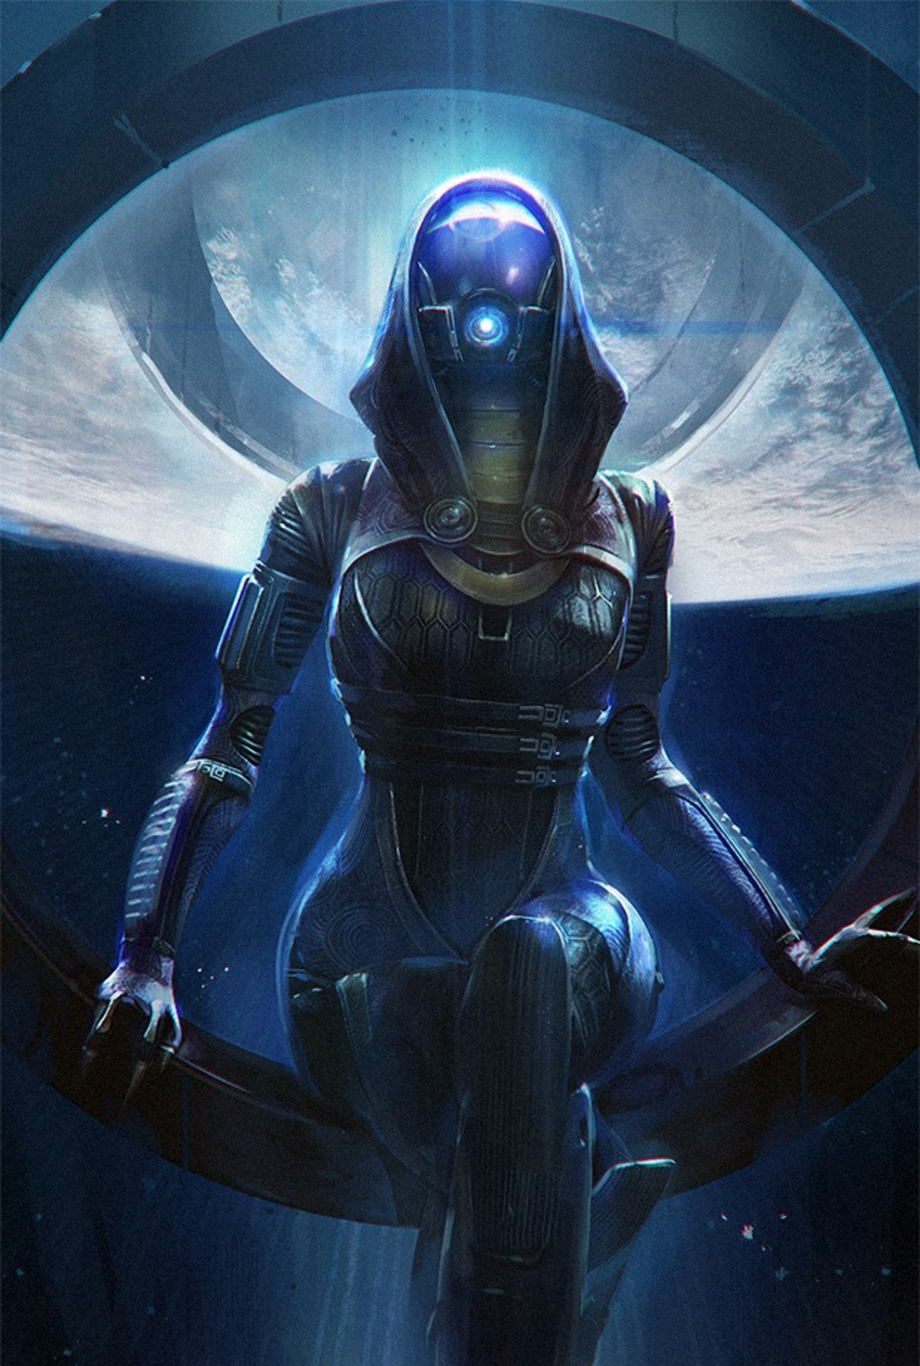 Tali'Zorah narr Rayya (Vas Normandy) - Mass Effect Series